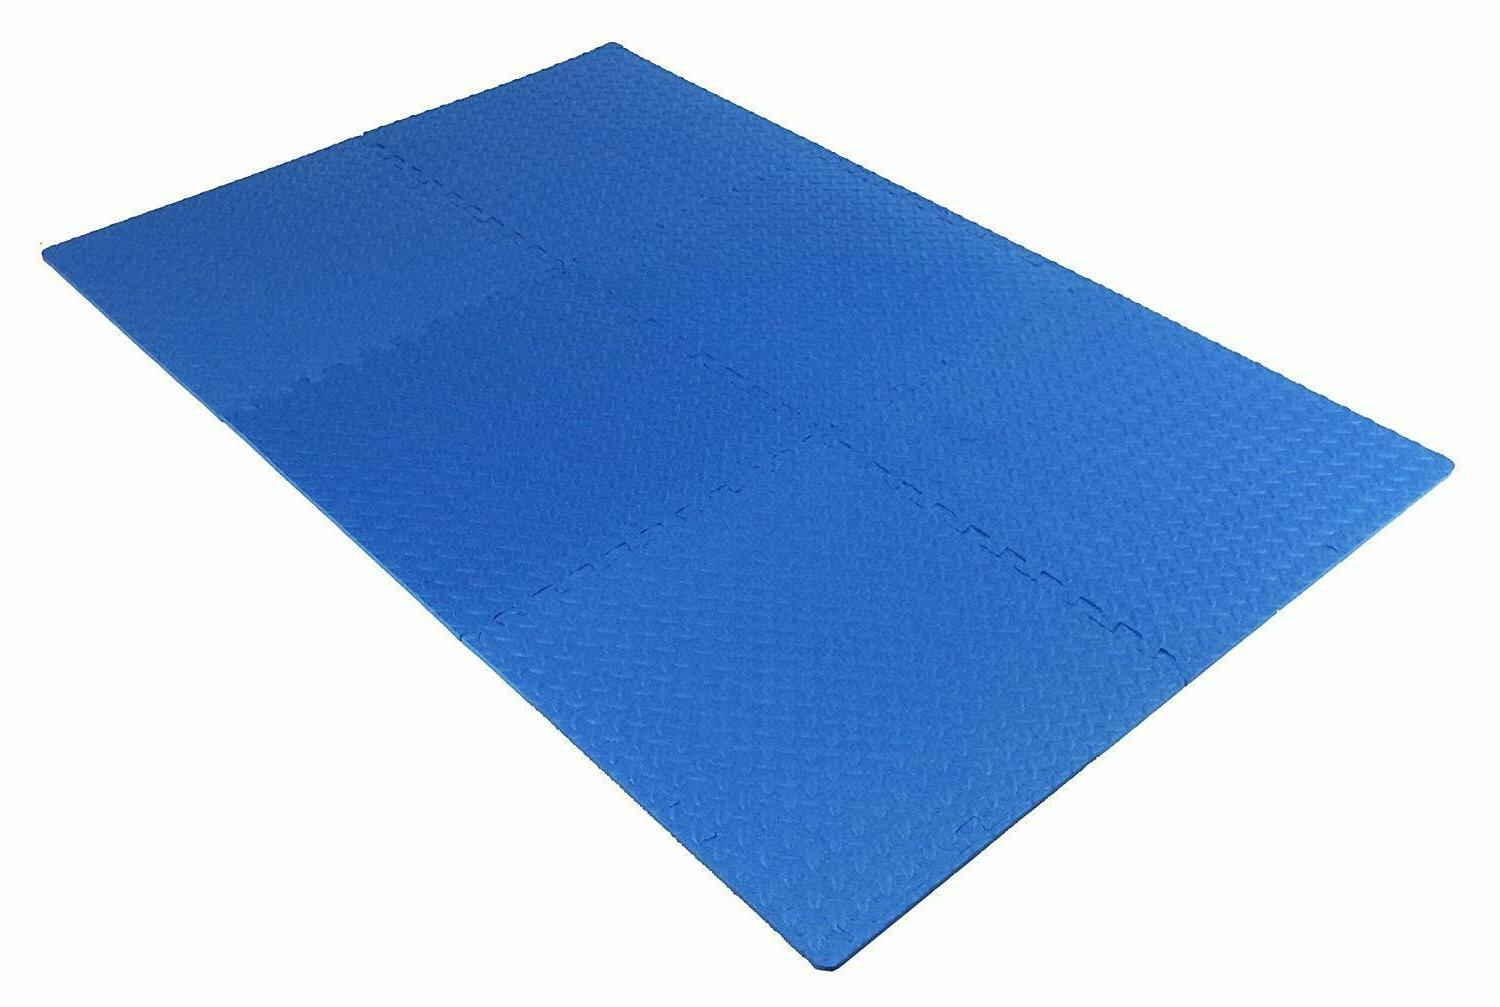 Interlocking Puzzle Gym Floor SQFt